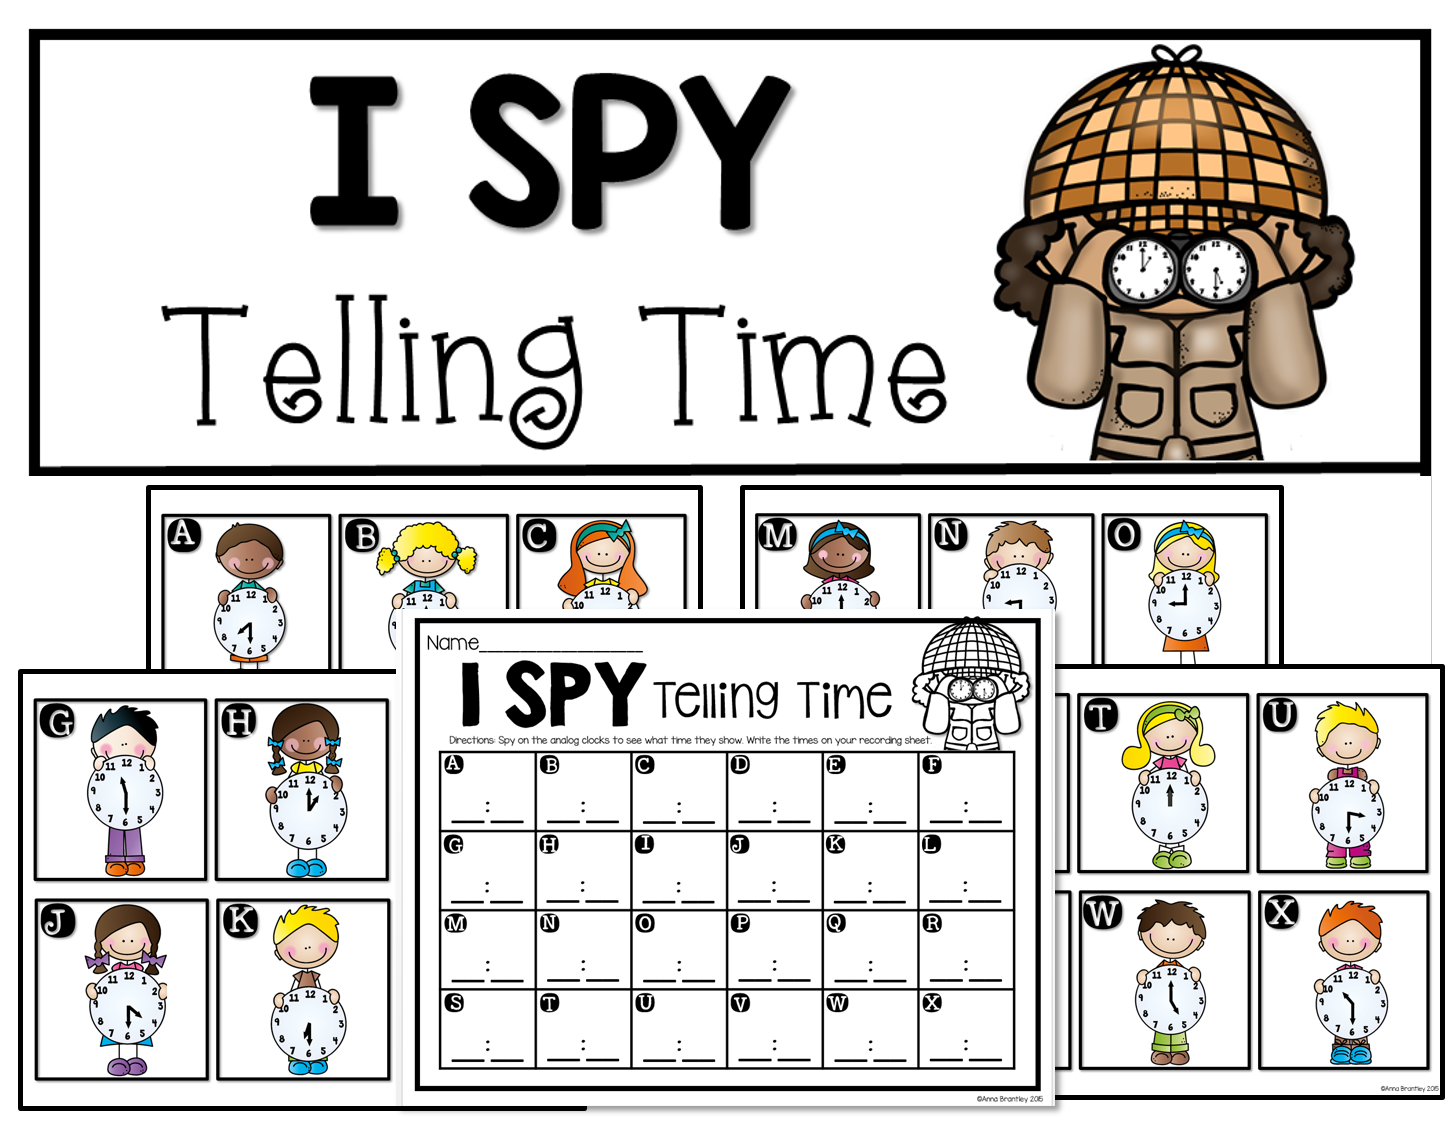 Activity I Spy Telling Time Free Download From Unit Let S Practice Telling Time From